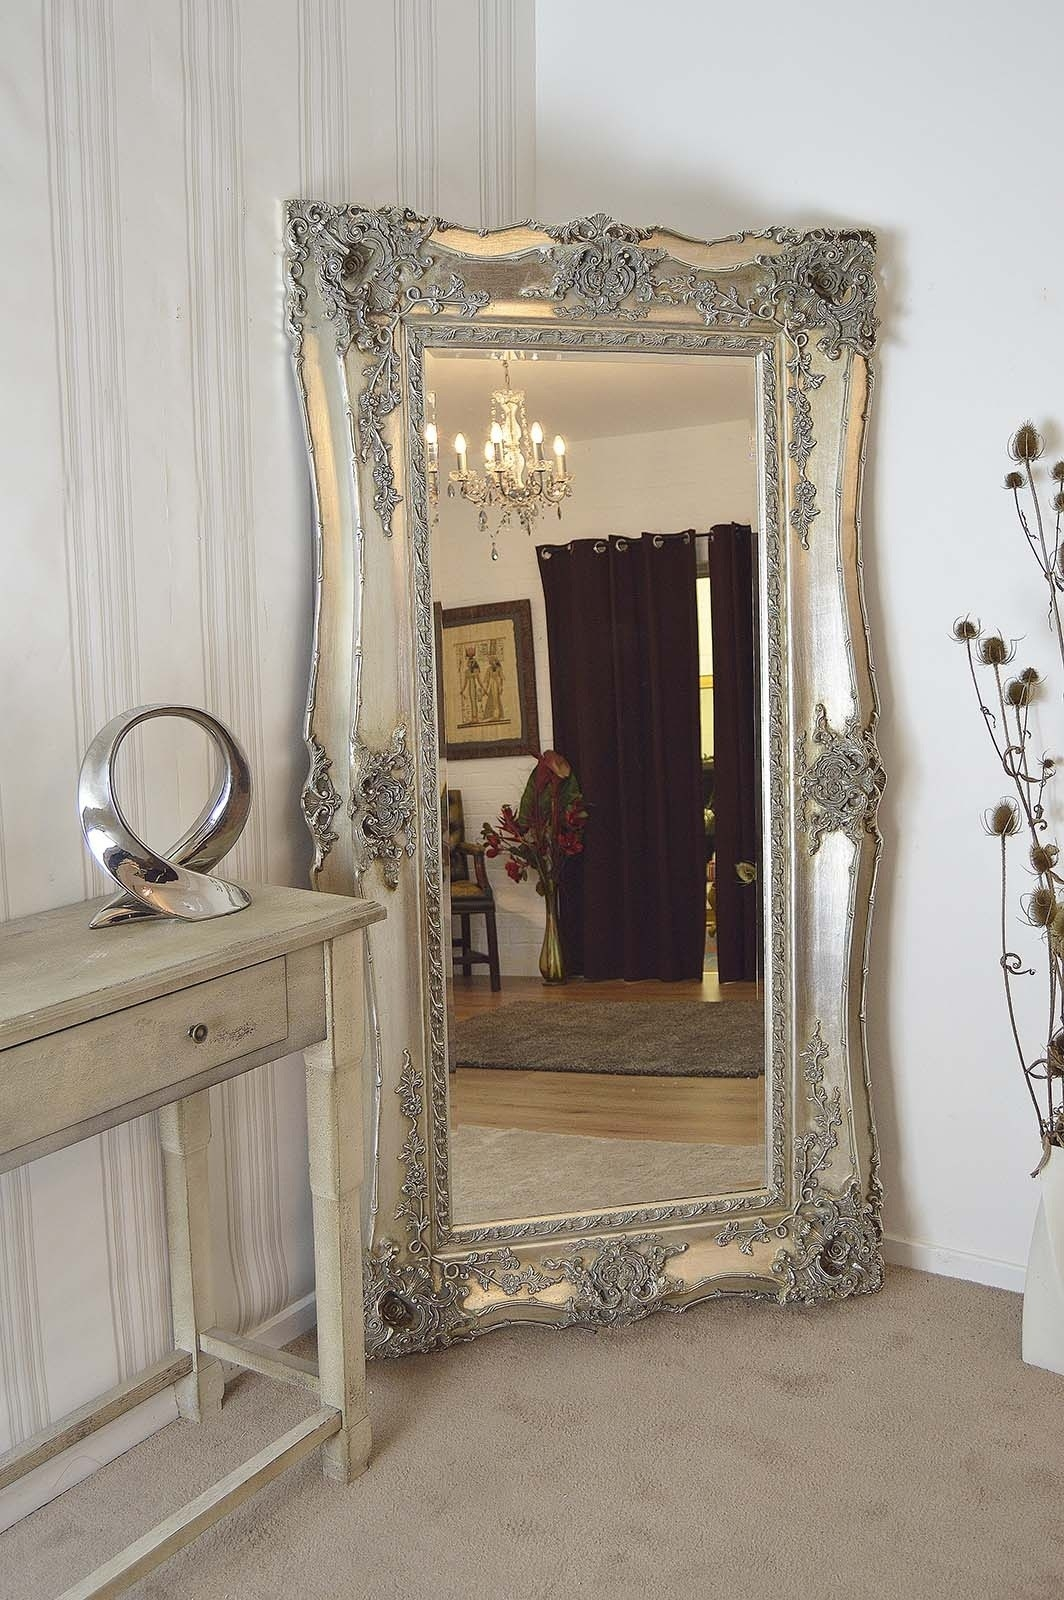 Extra Large Mirrors 10 Tips For Choosing Inovodecor Pertaining To Giant Mirrors For Sale (Image 6 of 15)